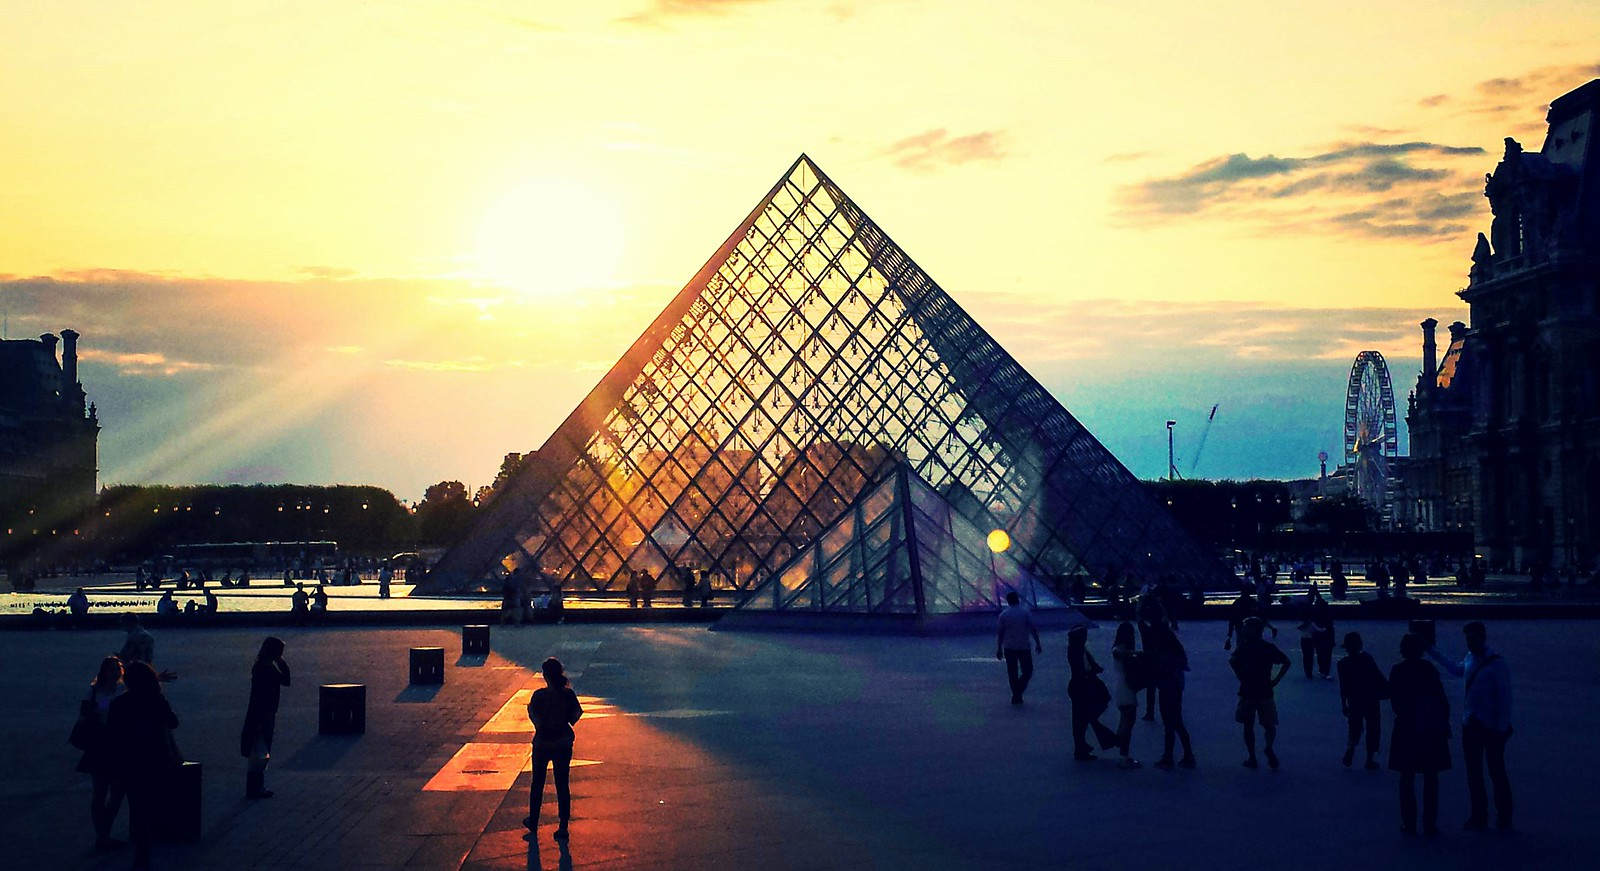 The Louvre Pyramid and Courtyard at Golden Hour